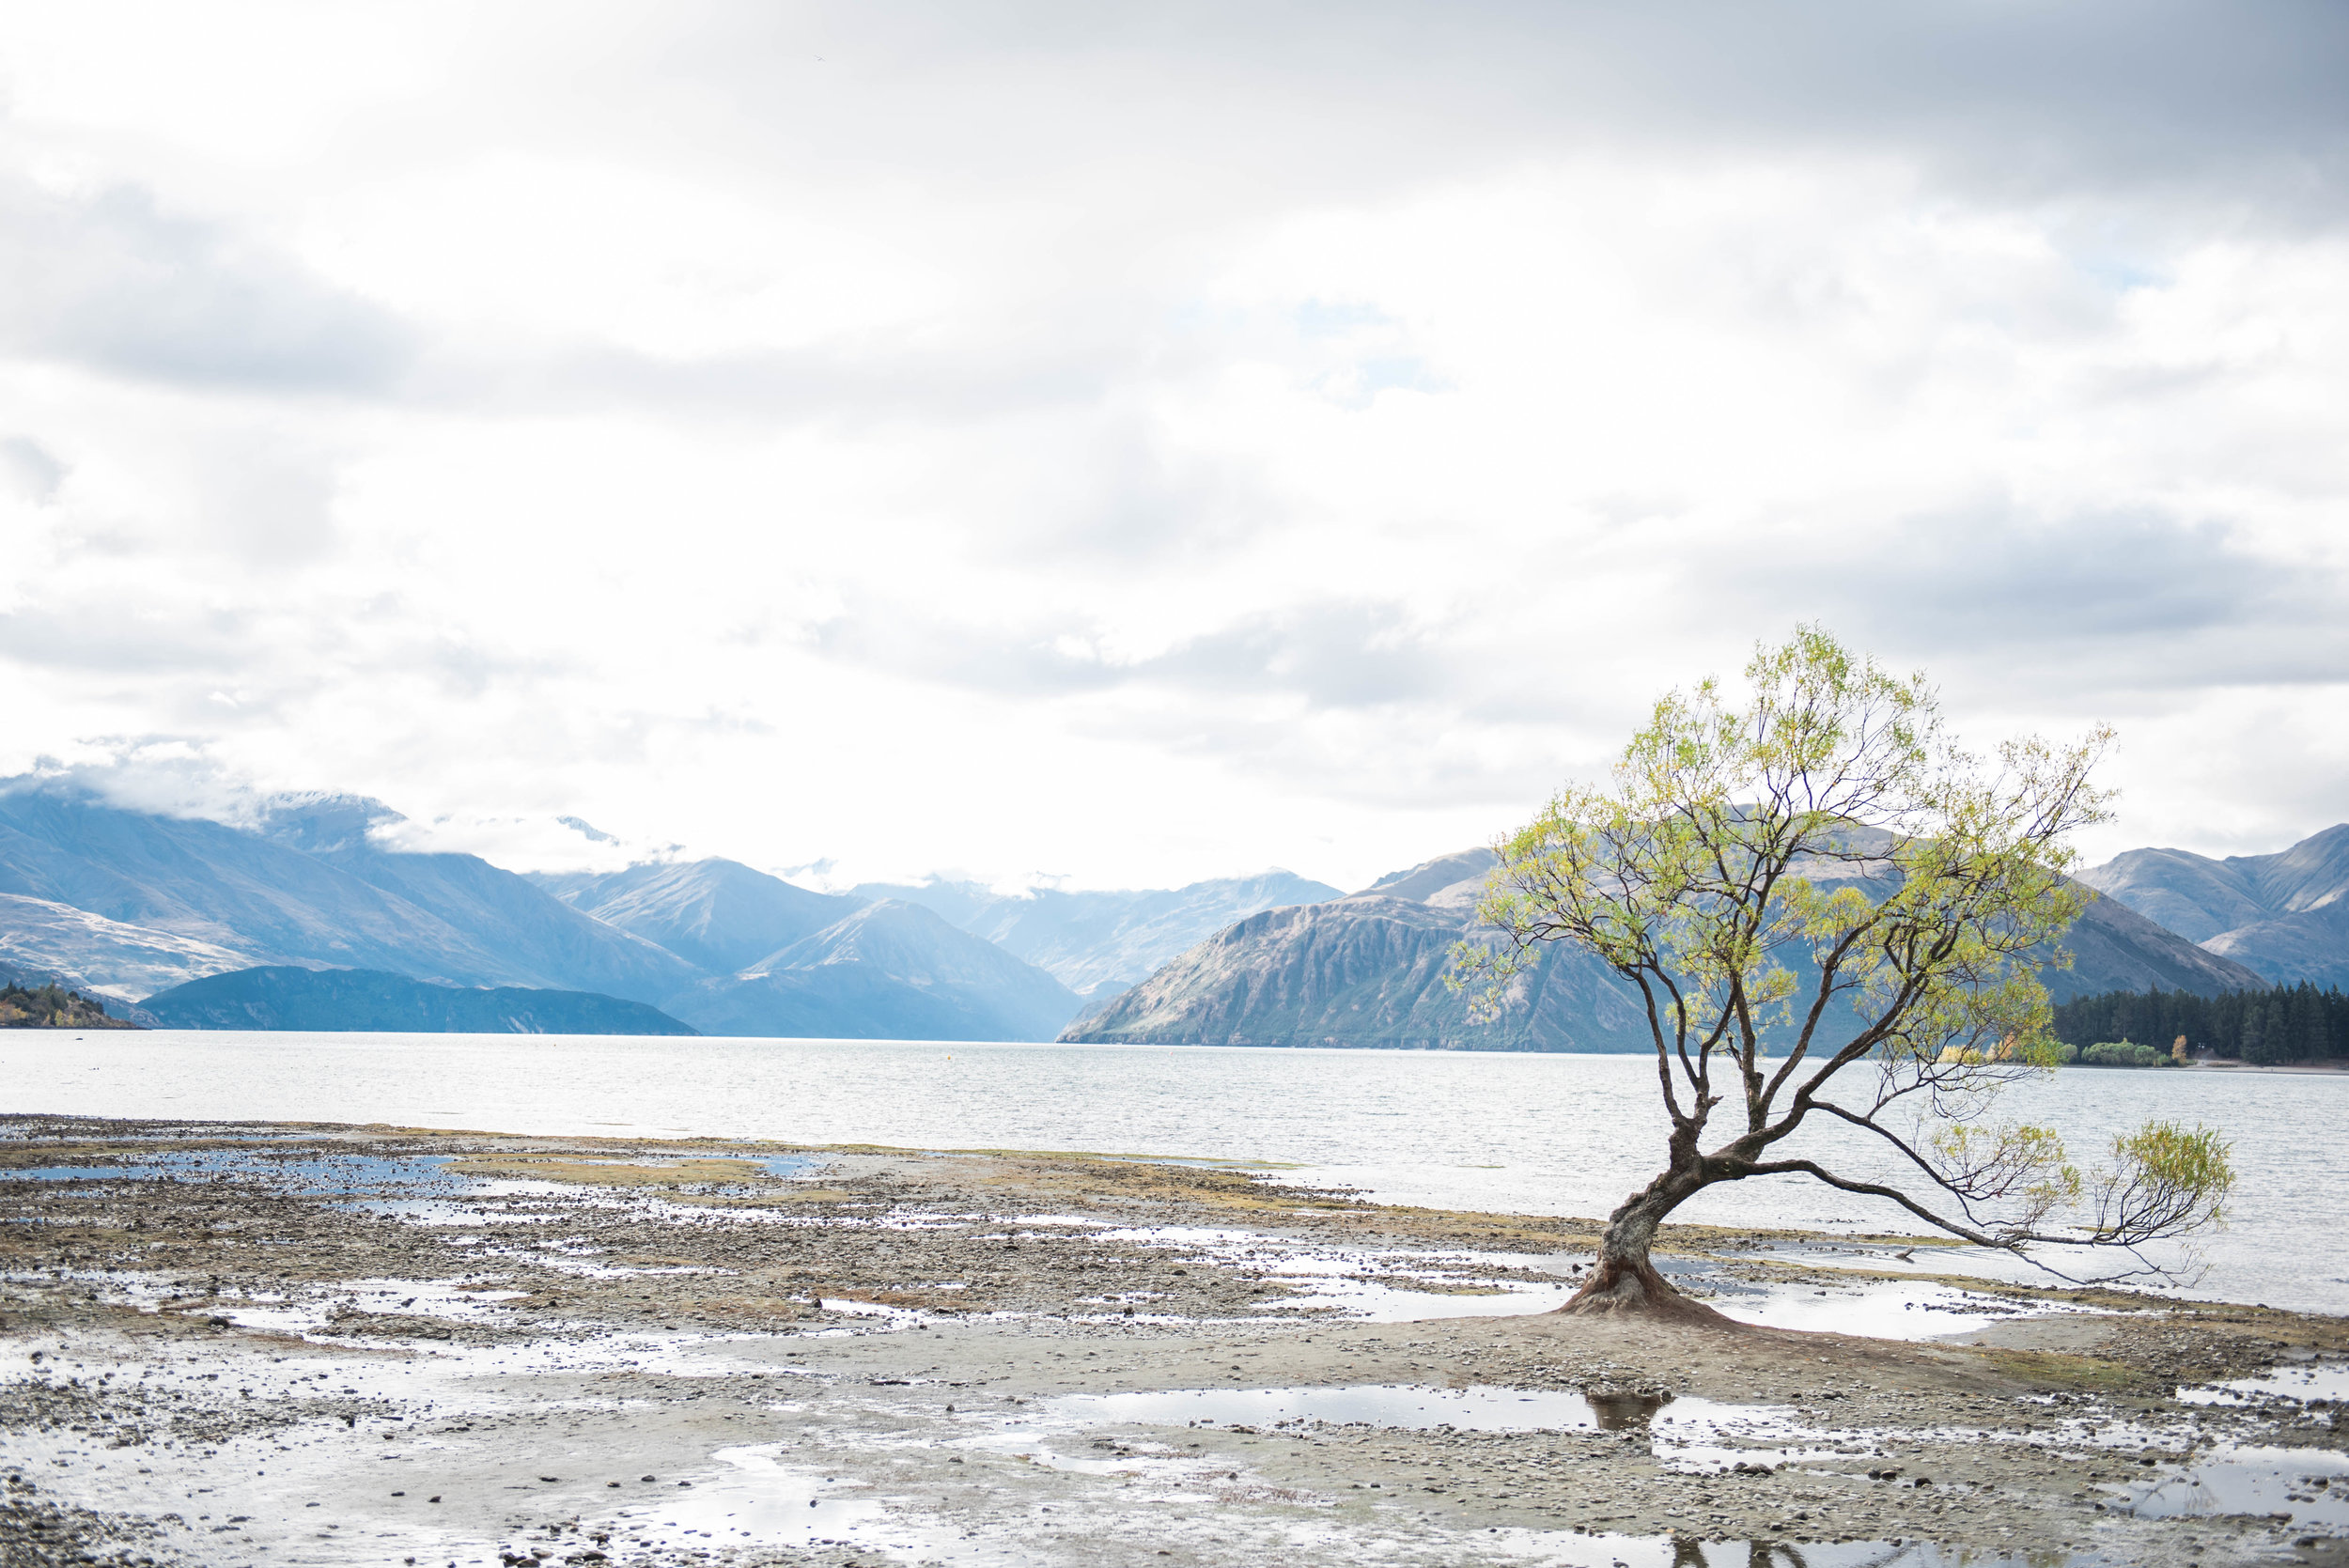 finally made it the famous wanaka tree in the water!! ... and they hadn't had any rain...